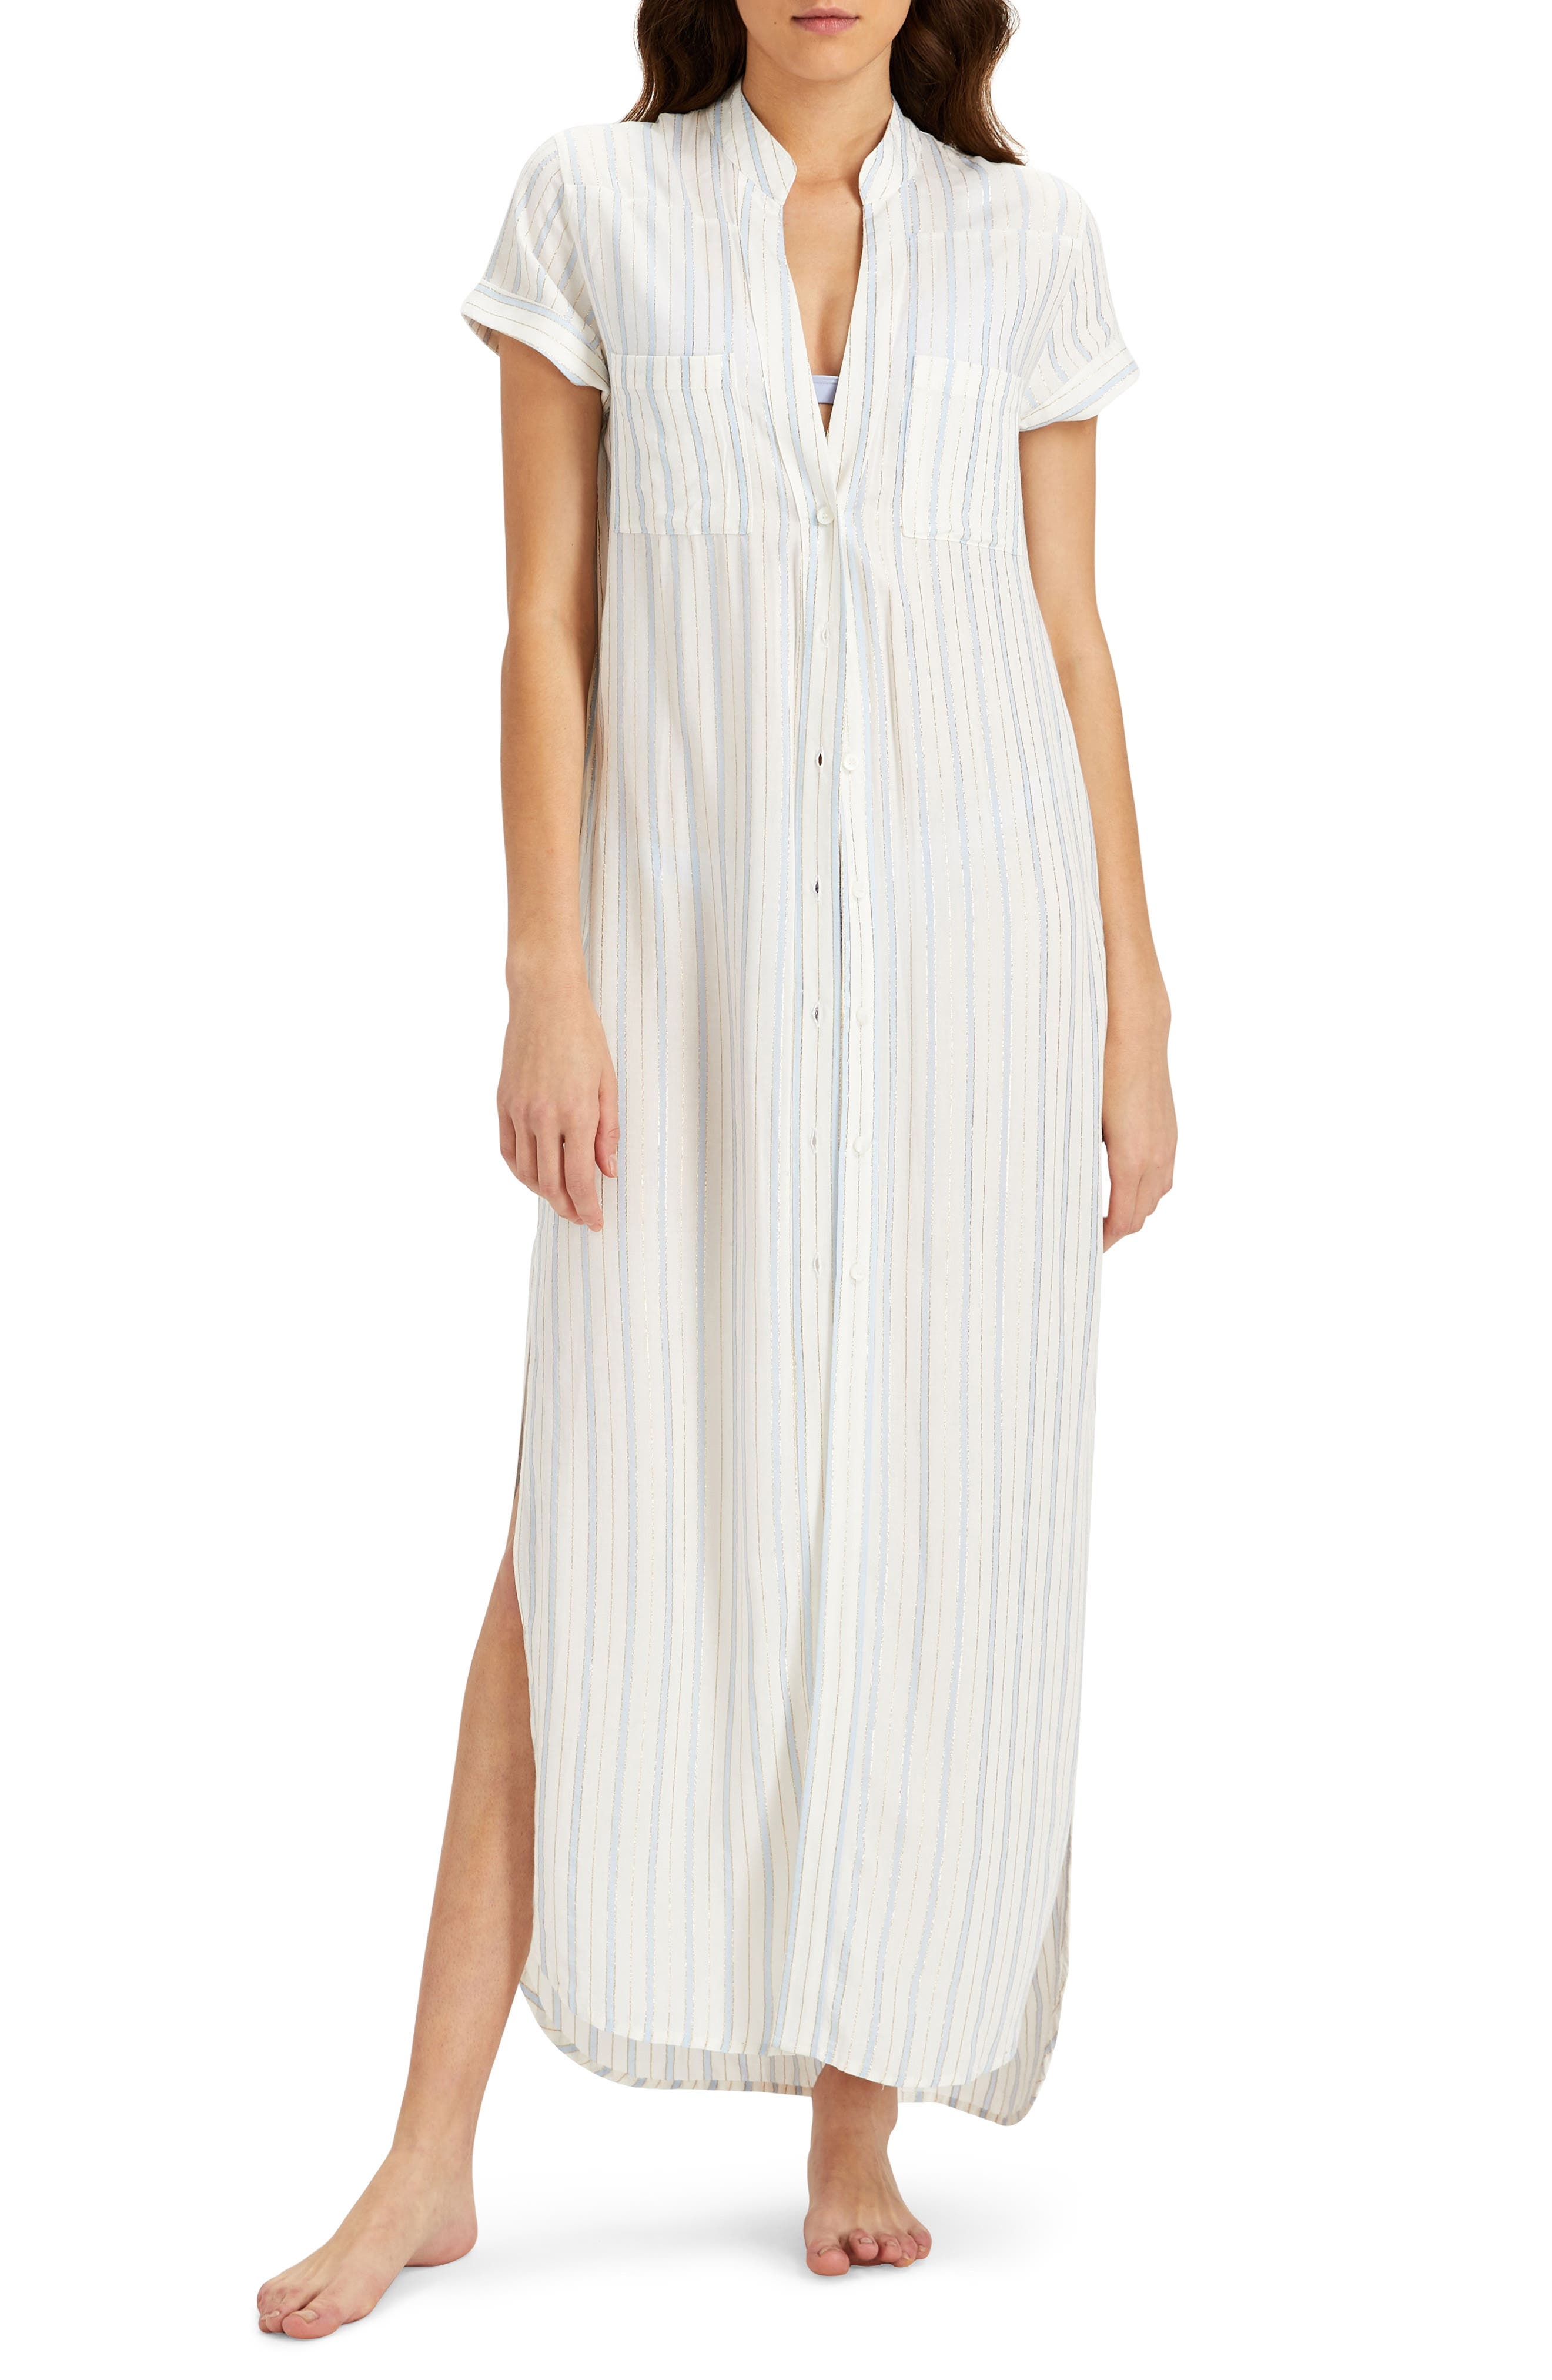 Main Image - Onia Kim Stripe Button Down Cover-Up Maxi Dress